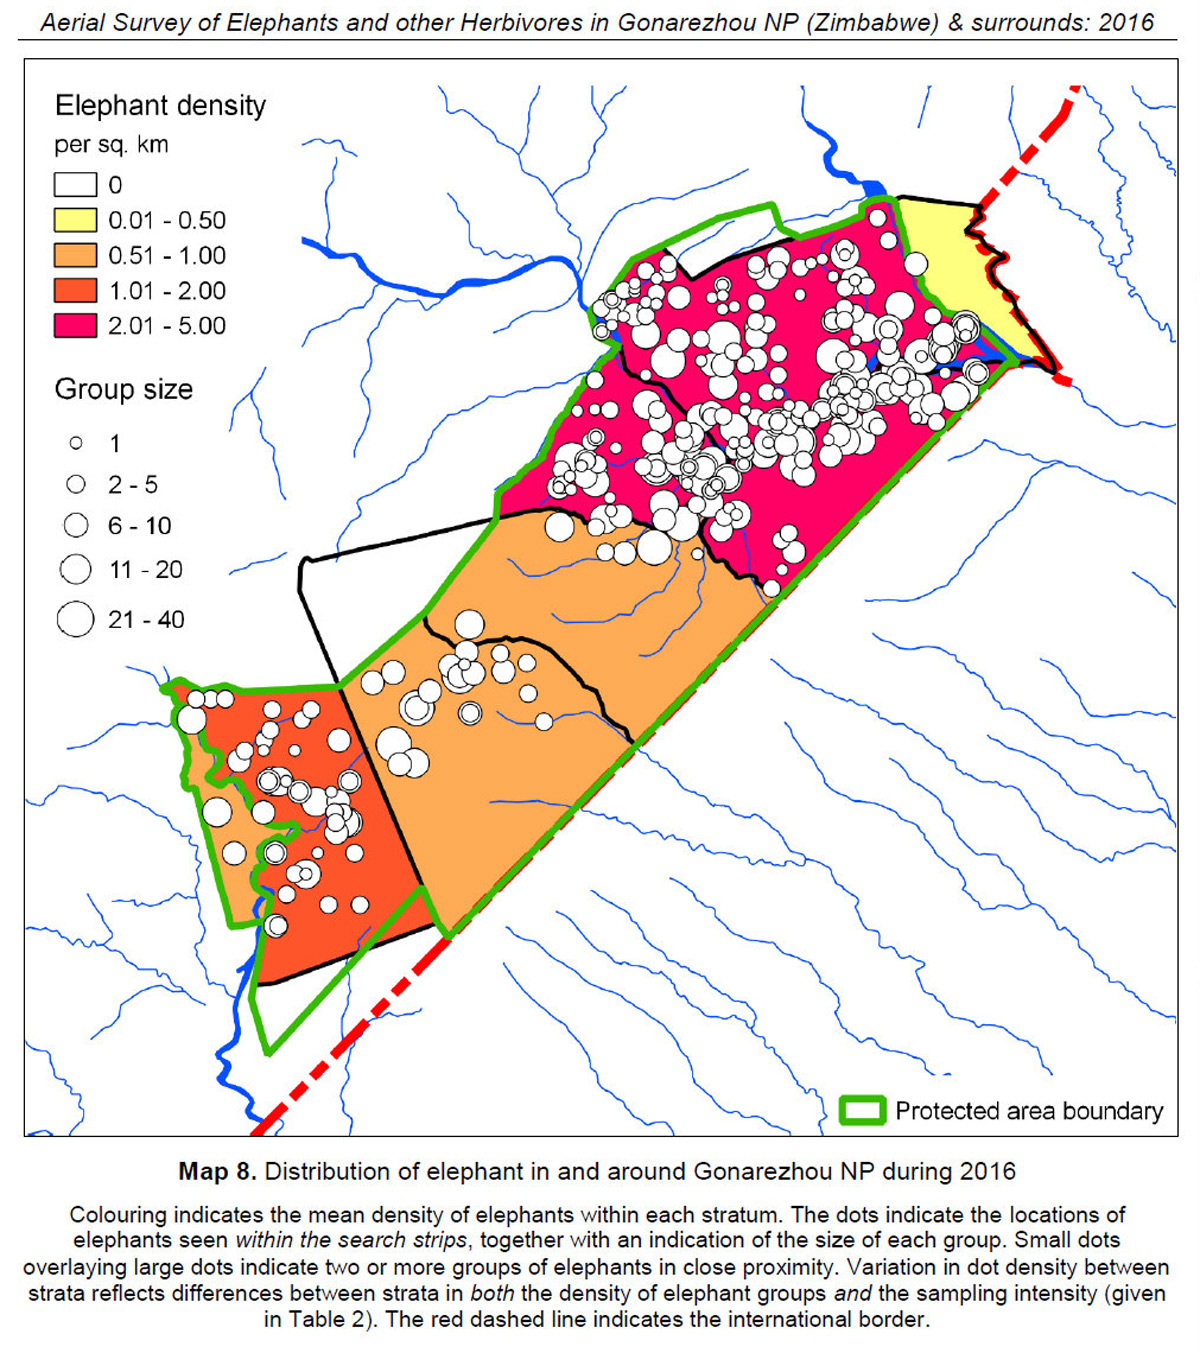 Map showing the aerial survey of elephants and other herbivores in Gonarezhou and surrounds